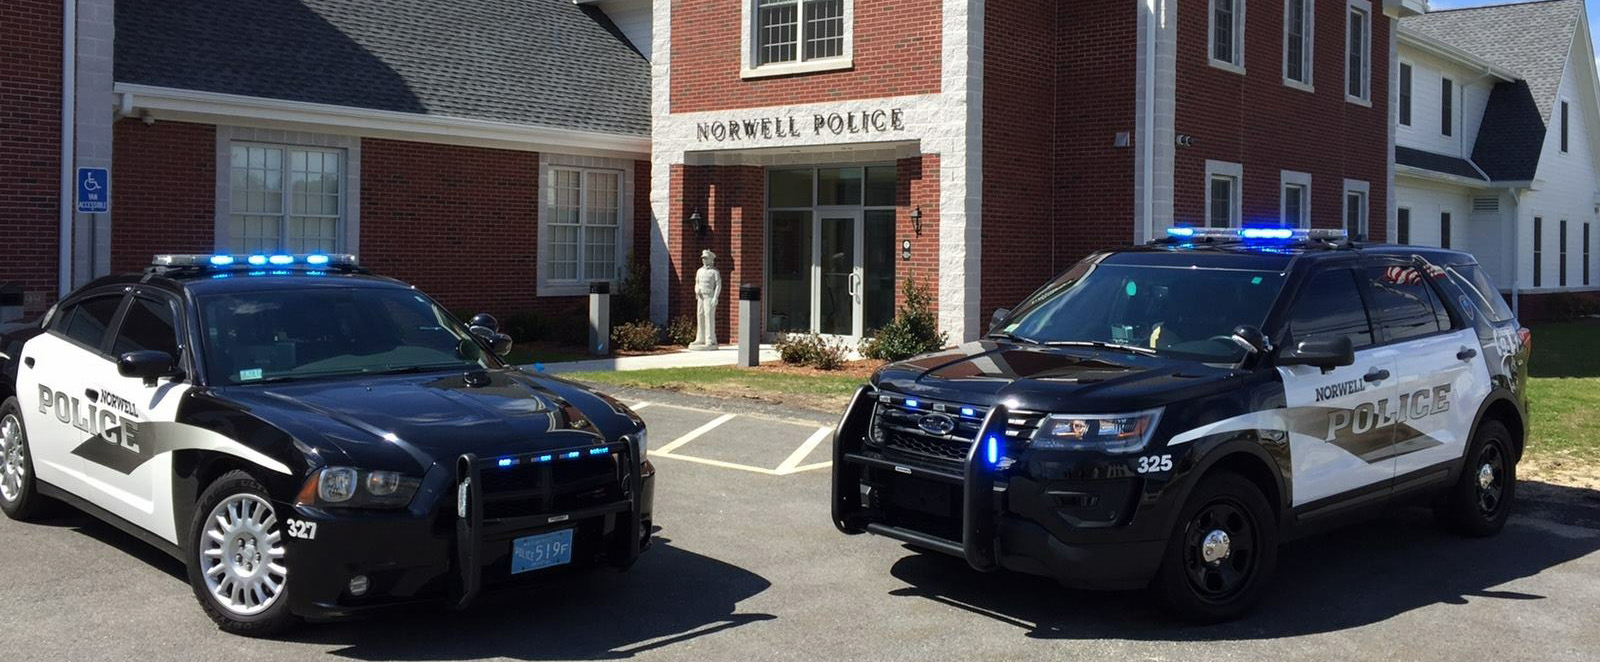 Norwell Police > Home